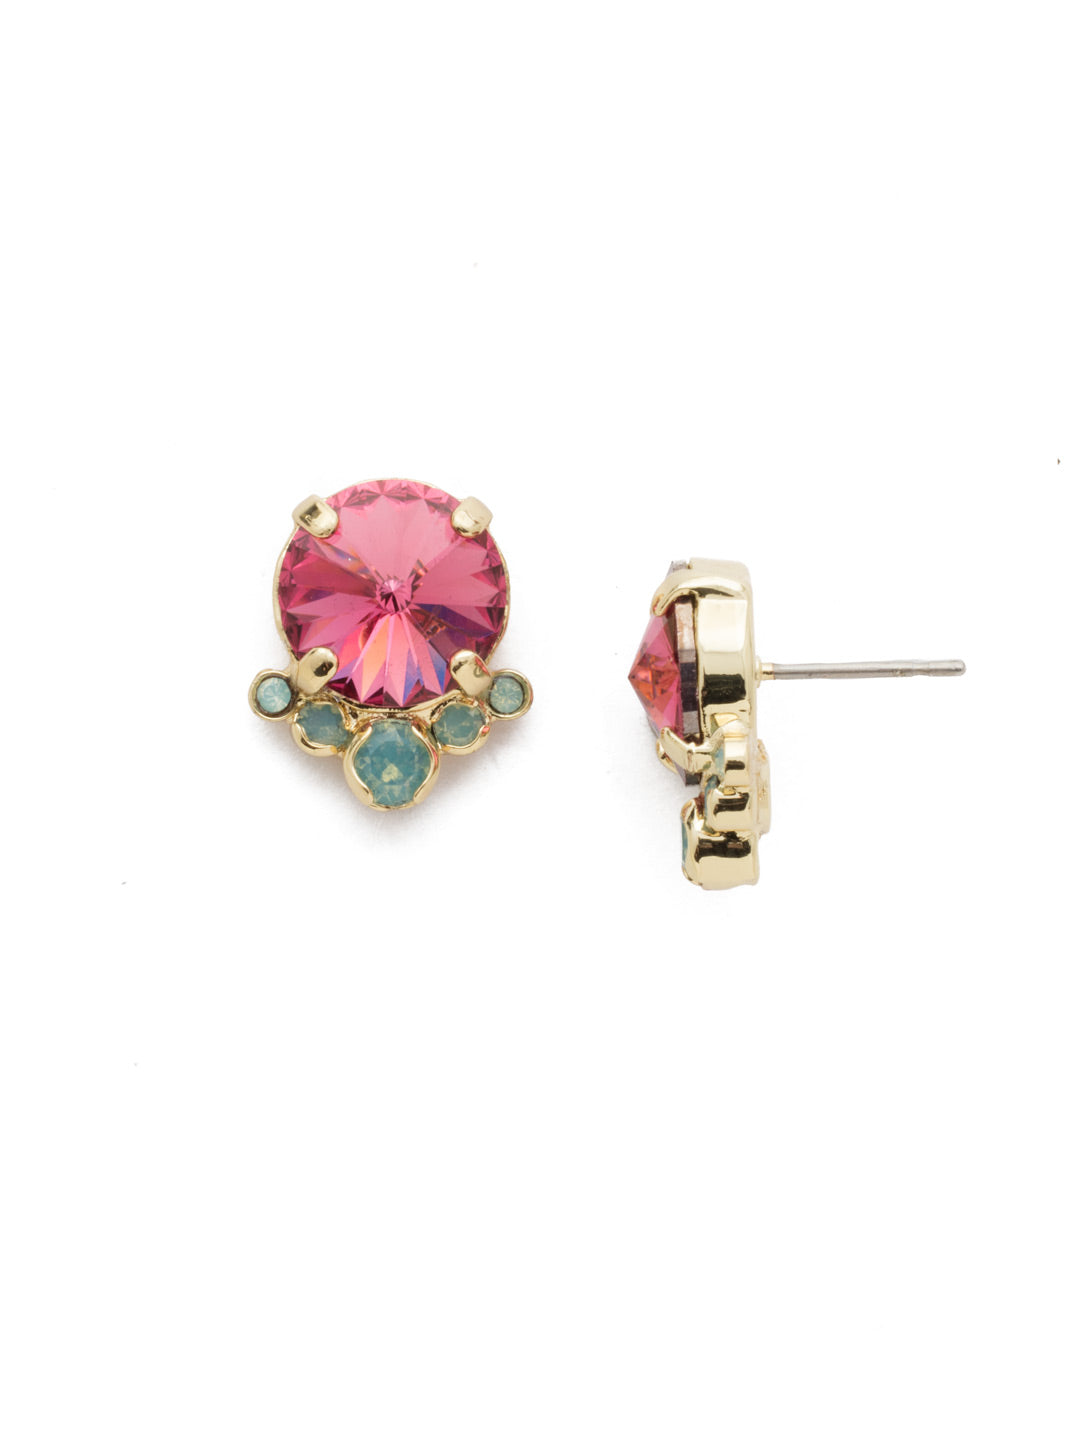 Regal Rounds Stud Earrings - EDH98BGCPO